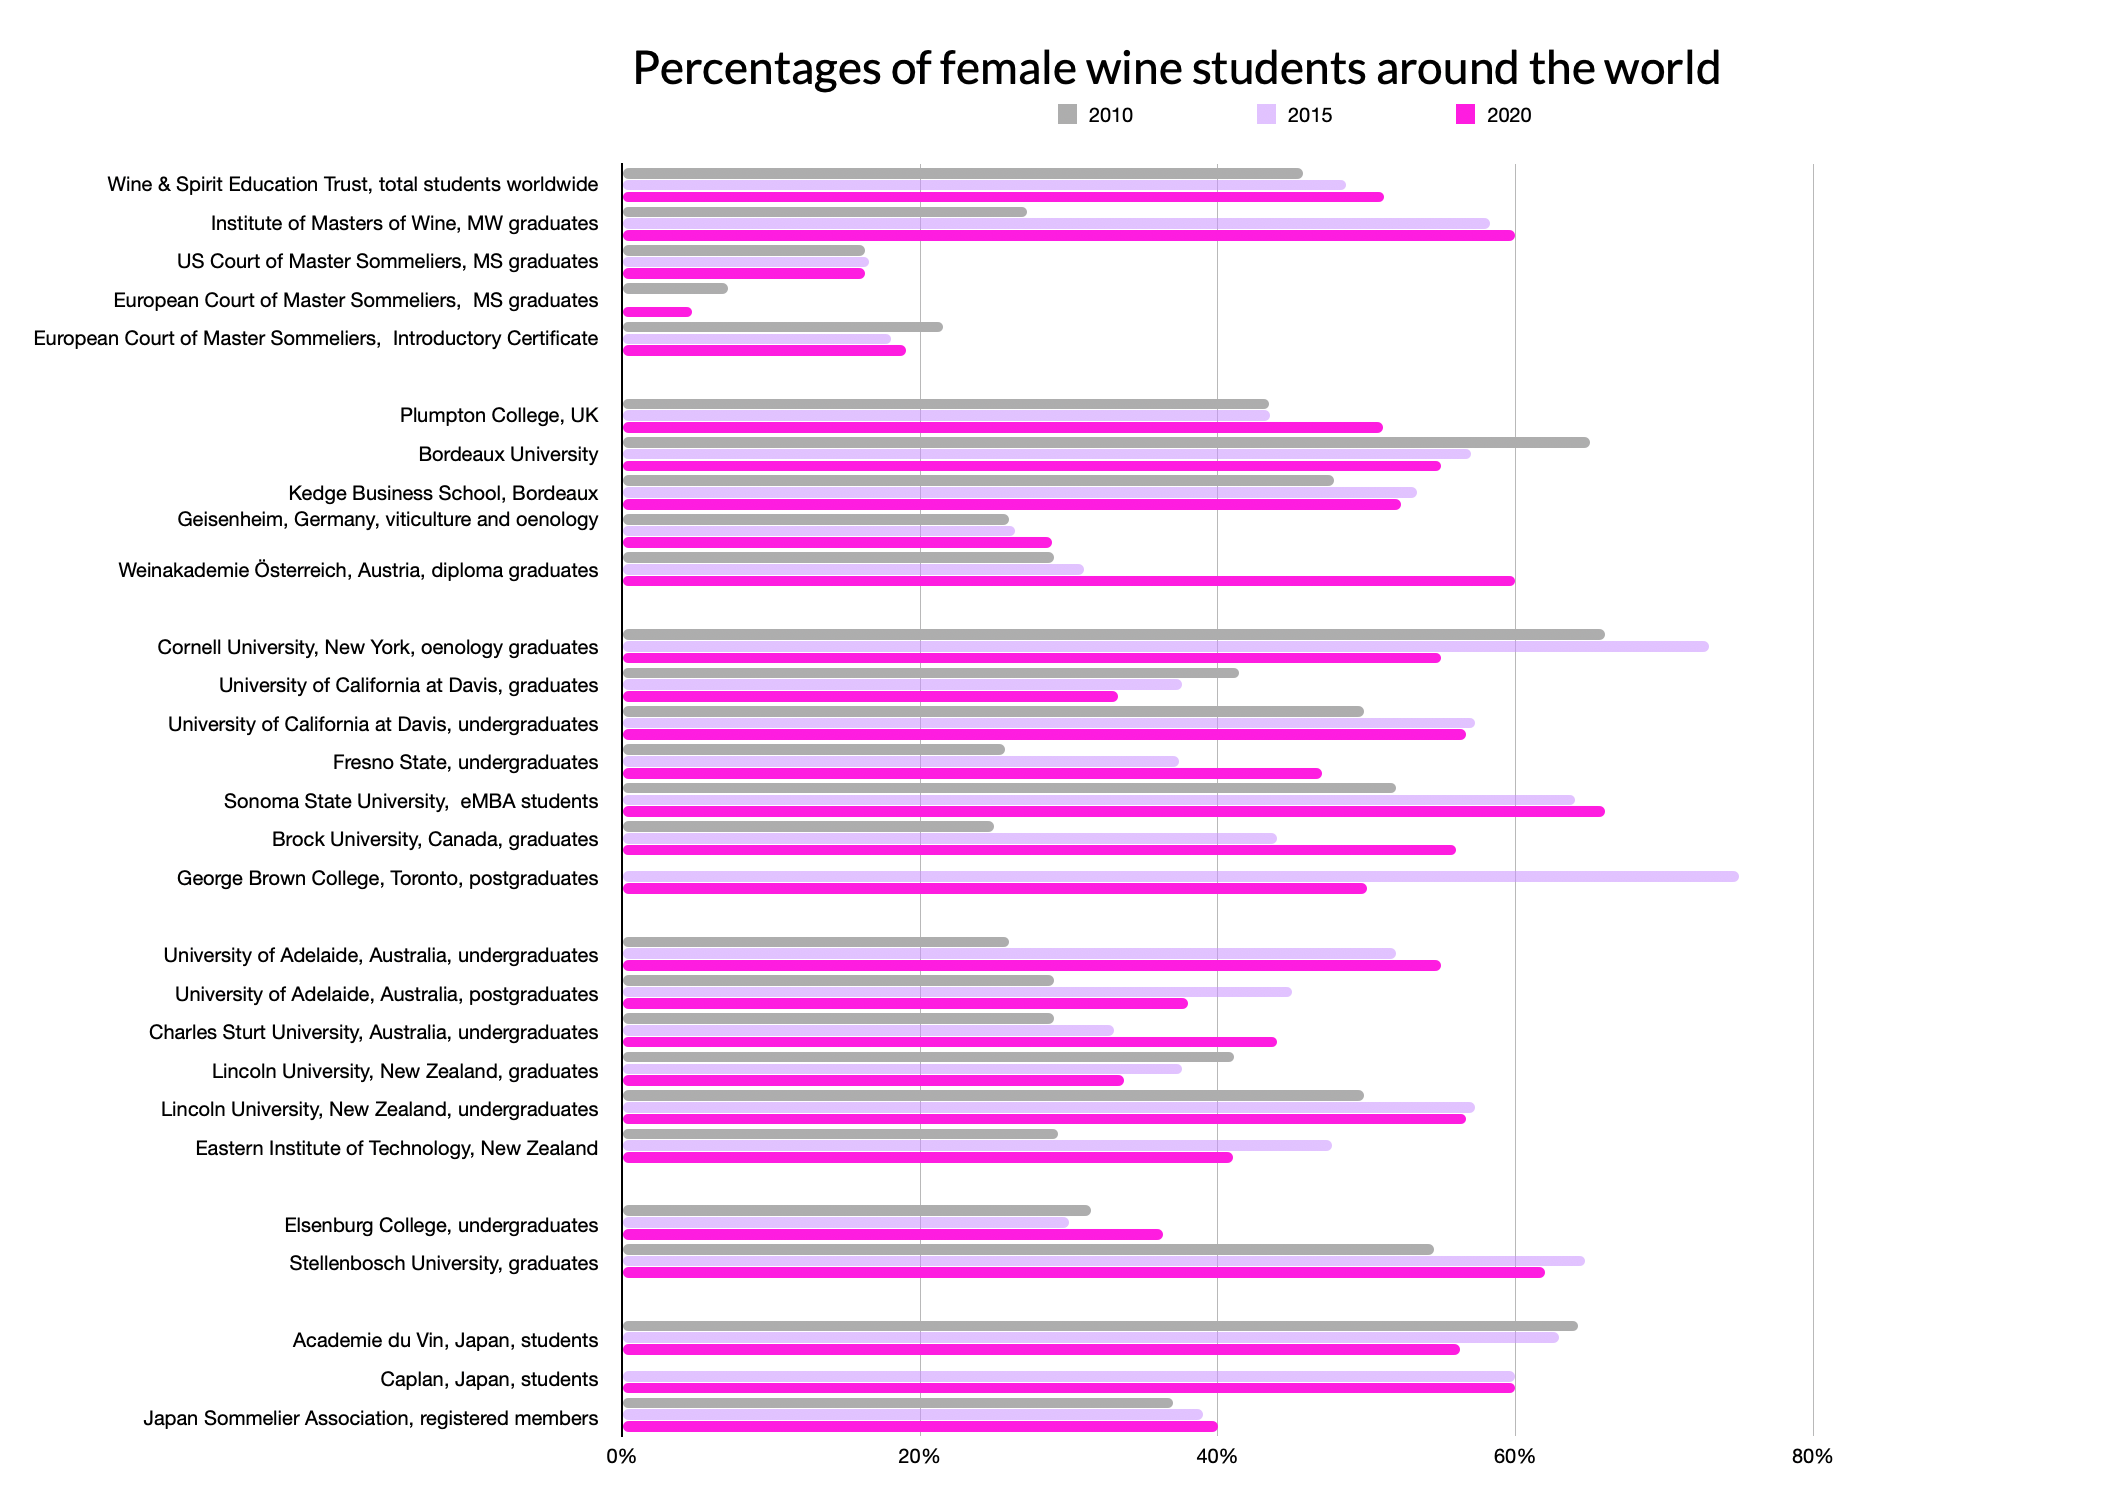 Female wine student percentages in leading educational institutions